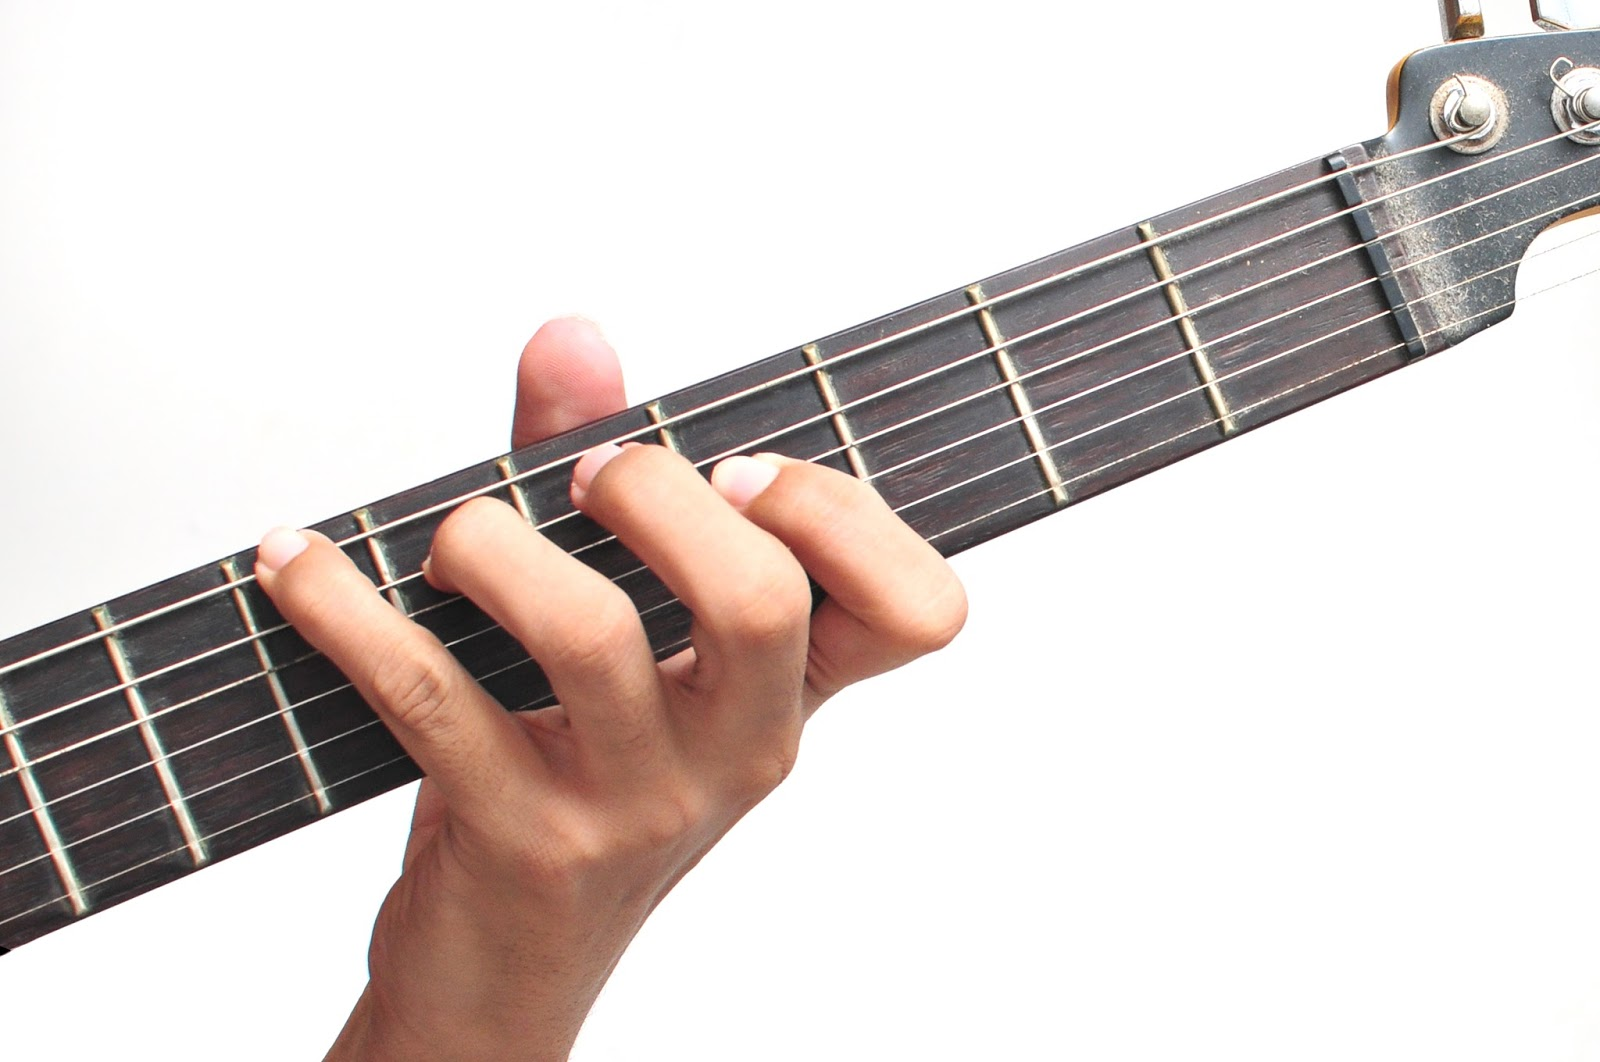 How to Play Guitar for Beginners: Step by Step Learning Guide